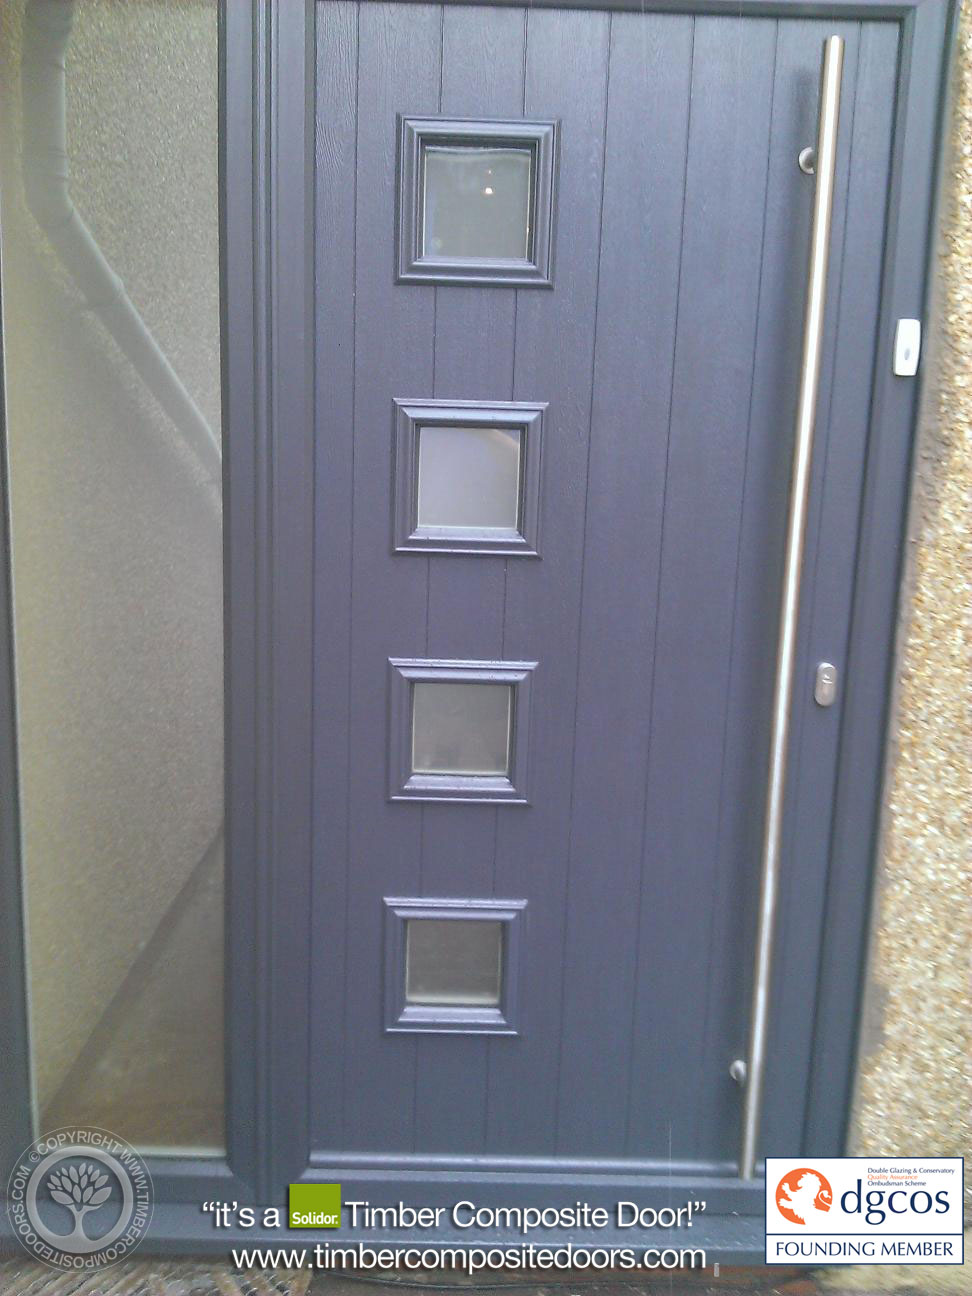 Anthracite-Grey-Milano-Solidor-Timber-Composite-Door2 & Anthracite-Grey-Milano-Solidor-Timber-Composite-Door2 | Composite ... pezcame.com